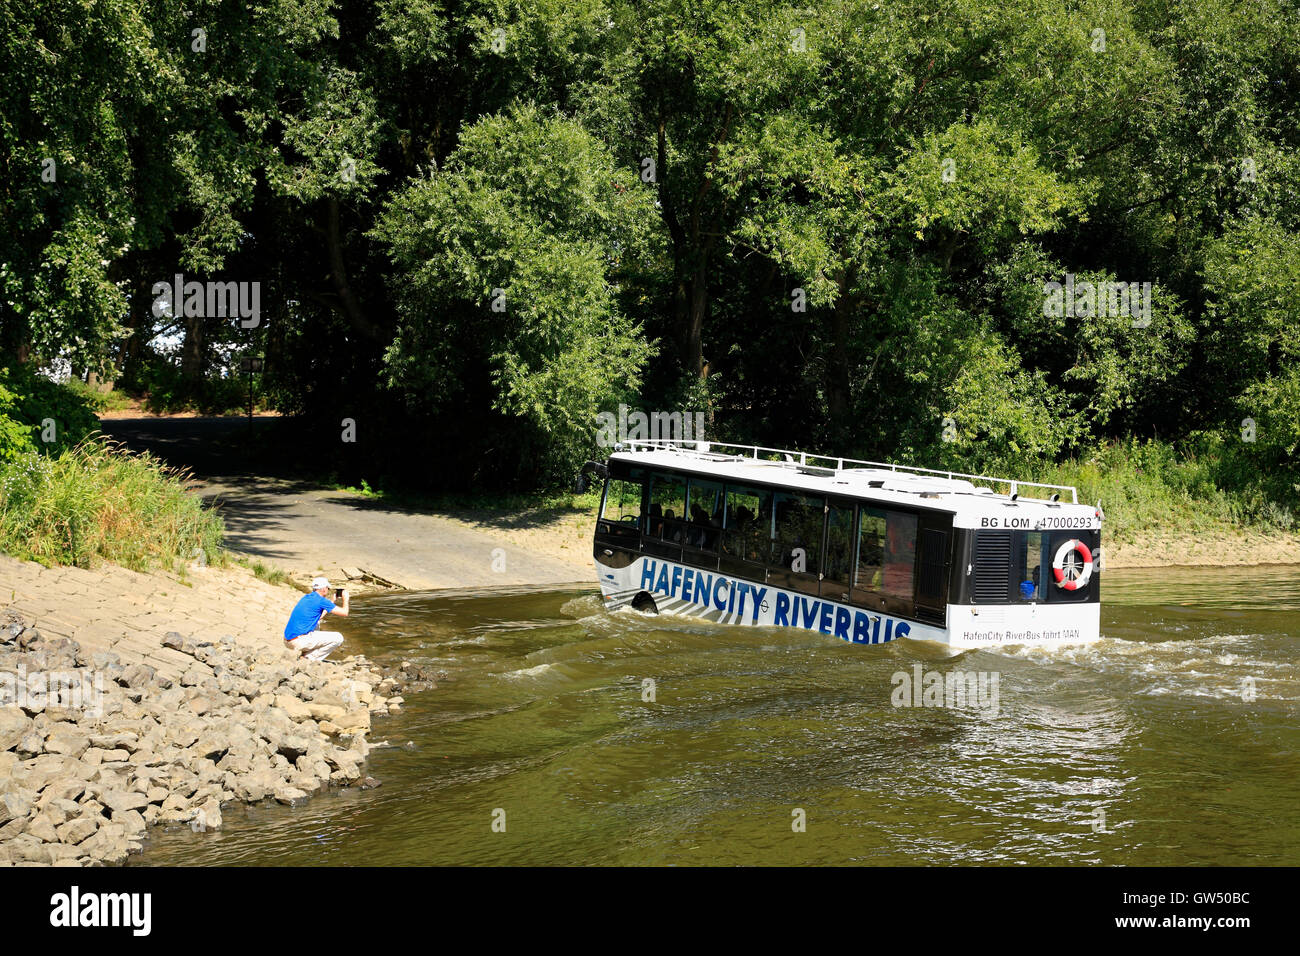 Swimming Sightseeing-bus RIVERBUS  in the Elbe river, Entenwerder, Hamburg. Germany, Europe - Stock Image